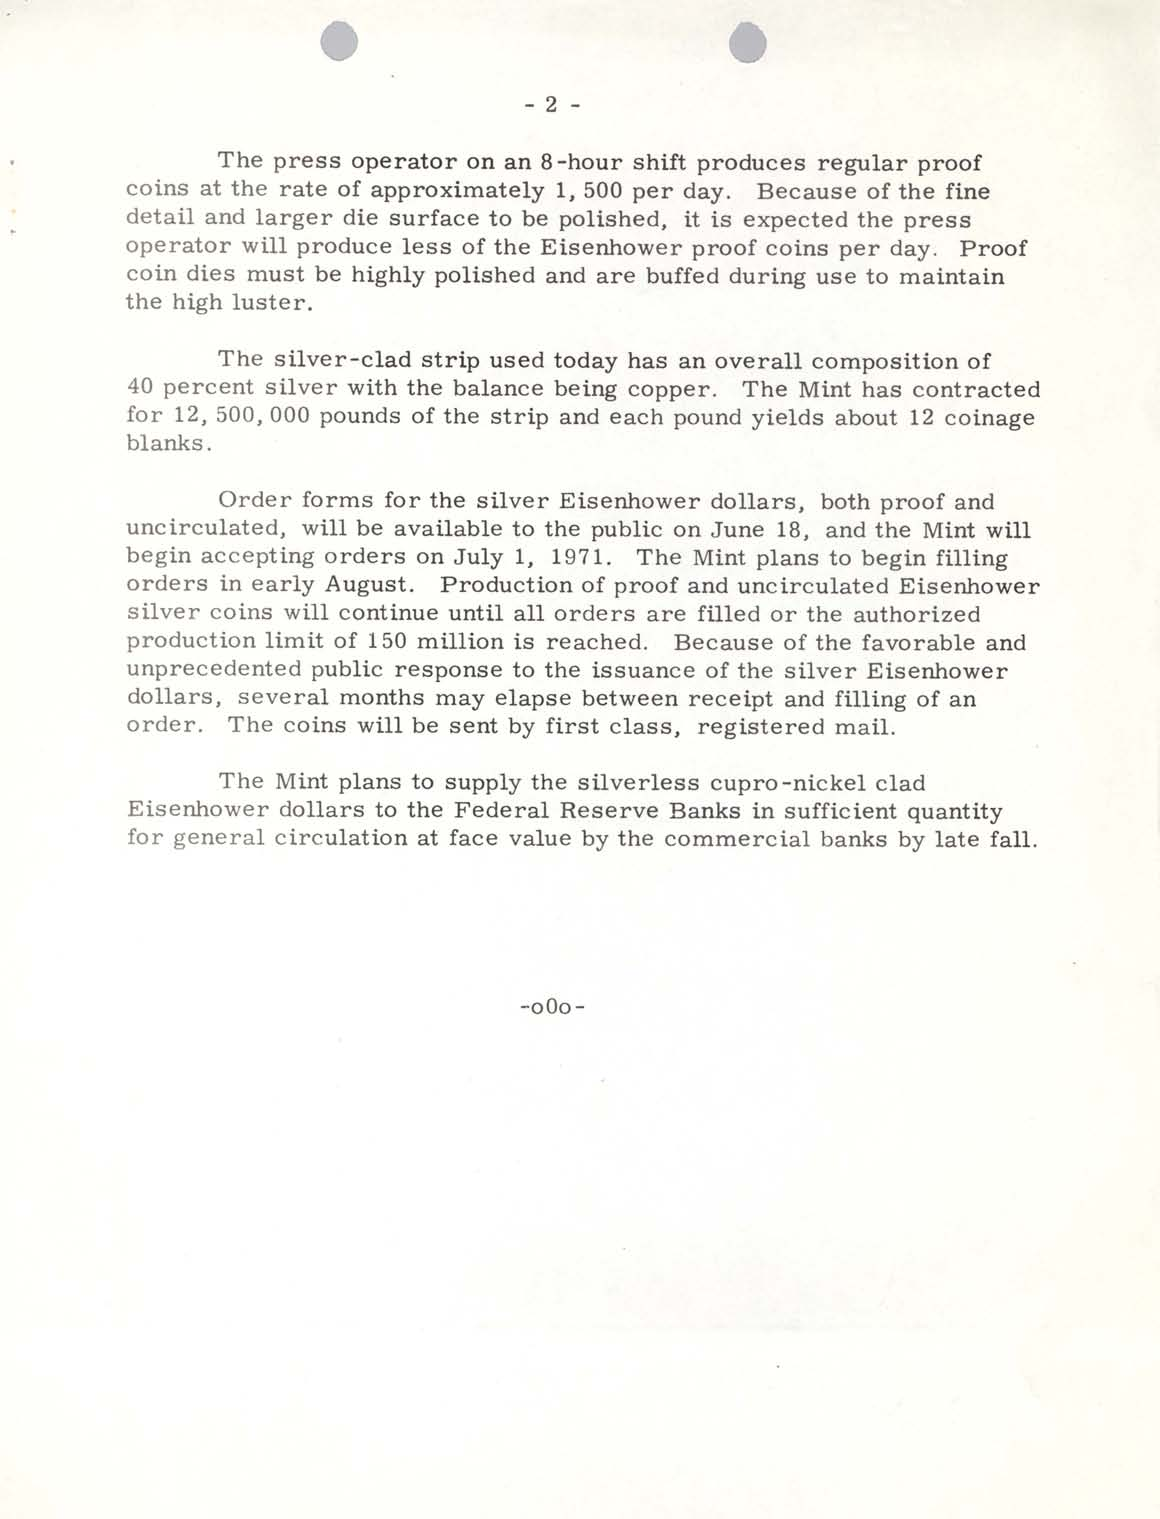 Historic Press Release: First Eisenhower Dollars Produced, Page 2